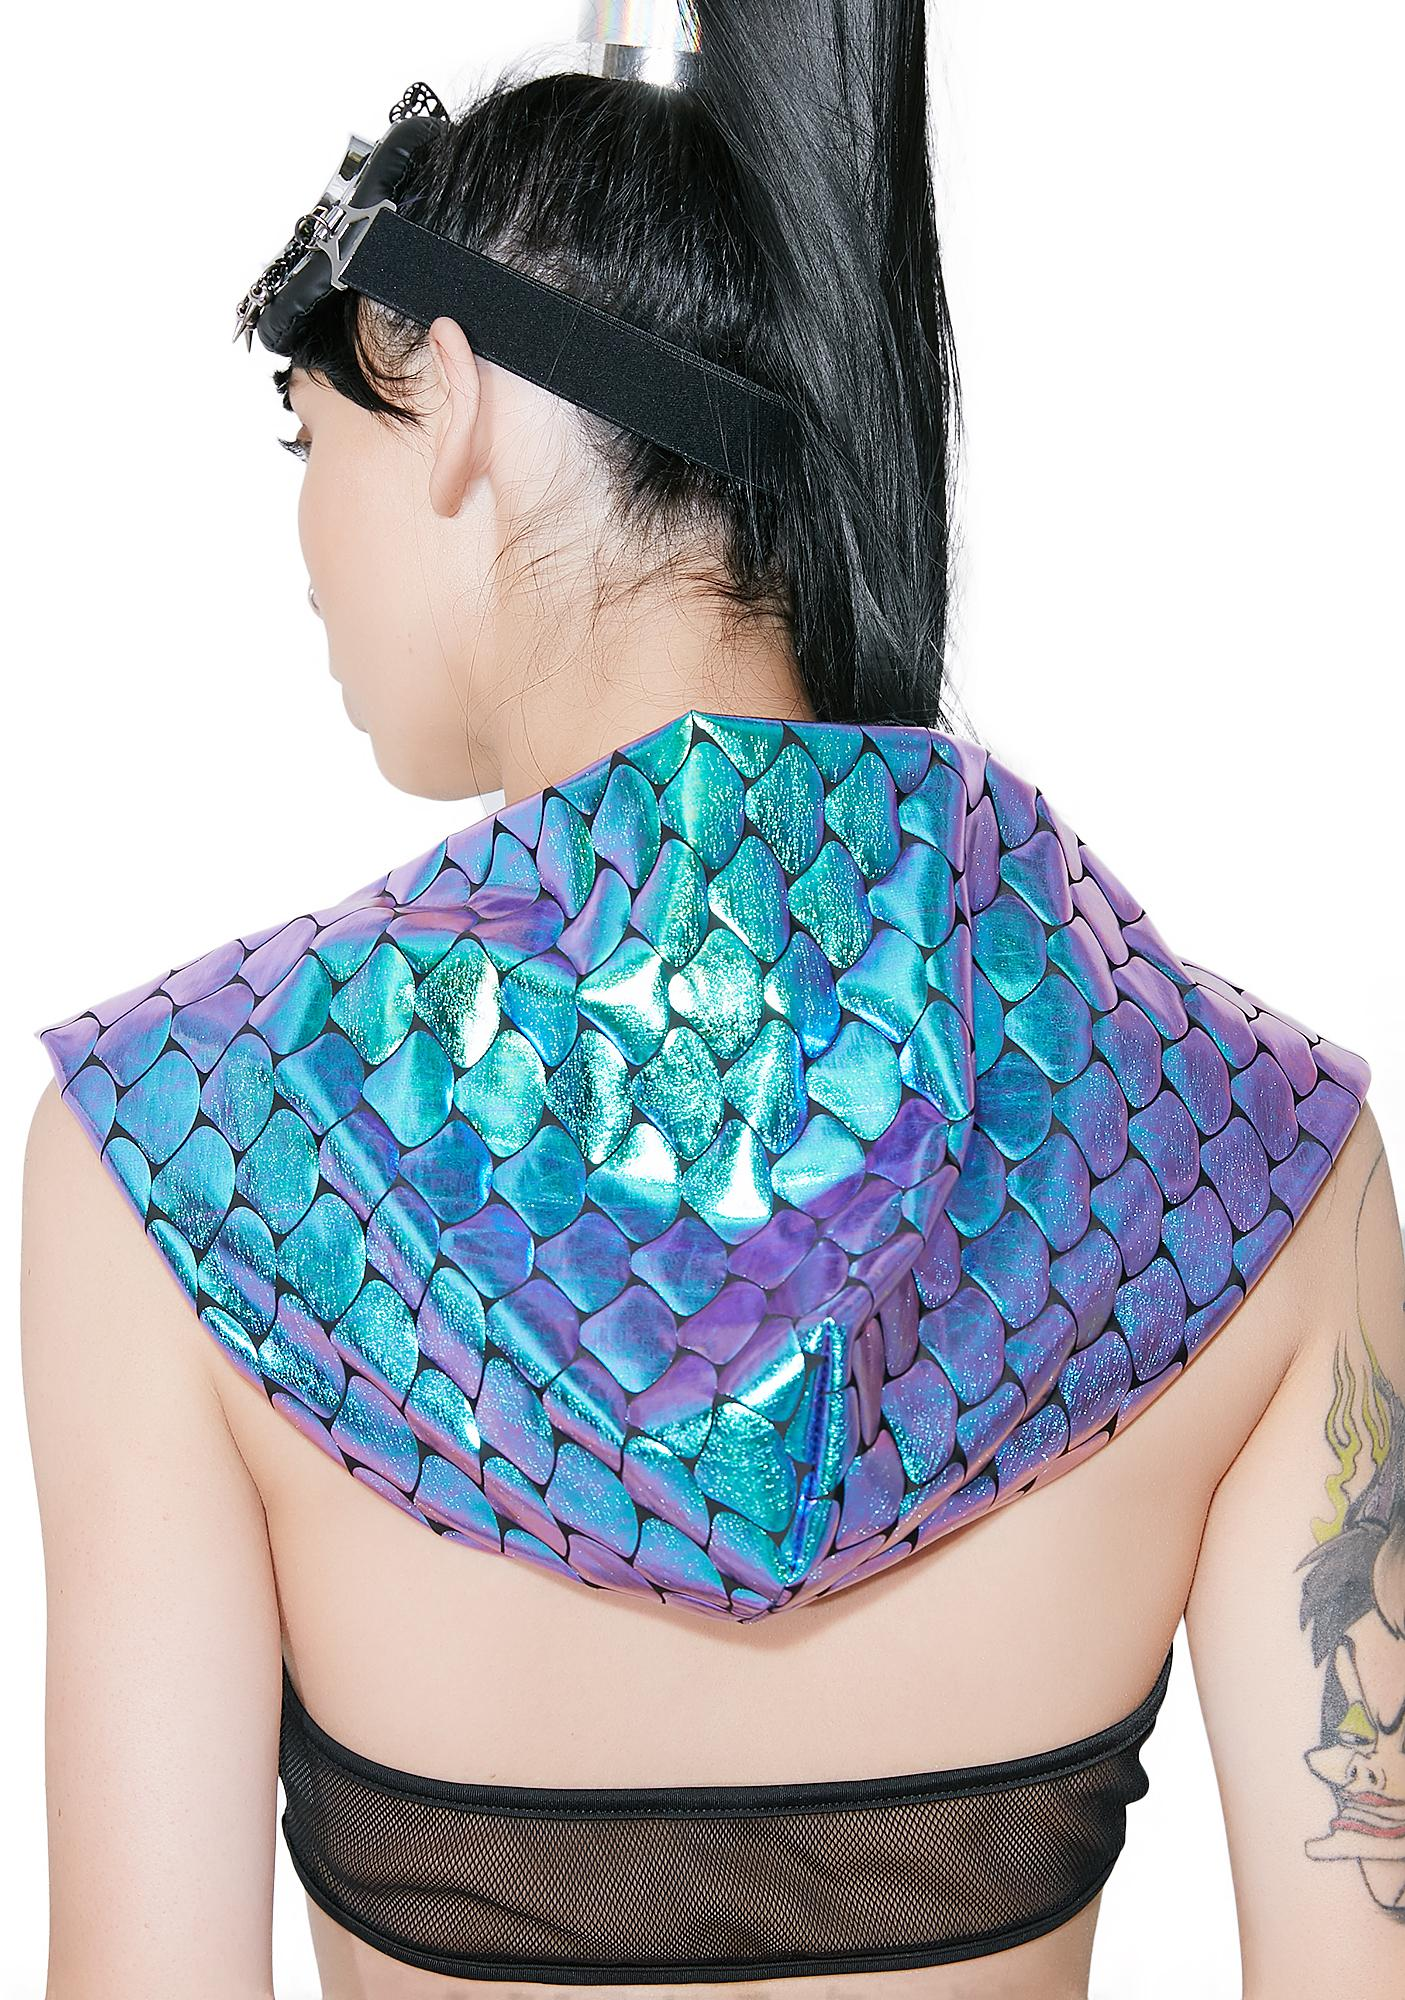 The Lyte Couture Reversible Mermaid Hood